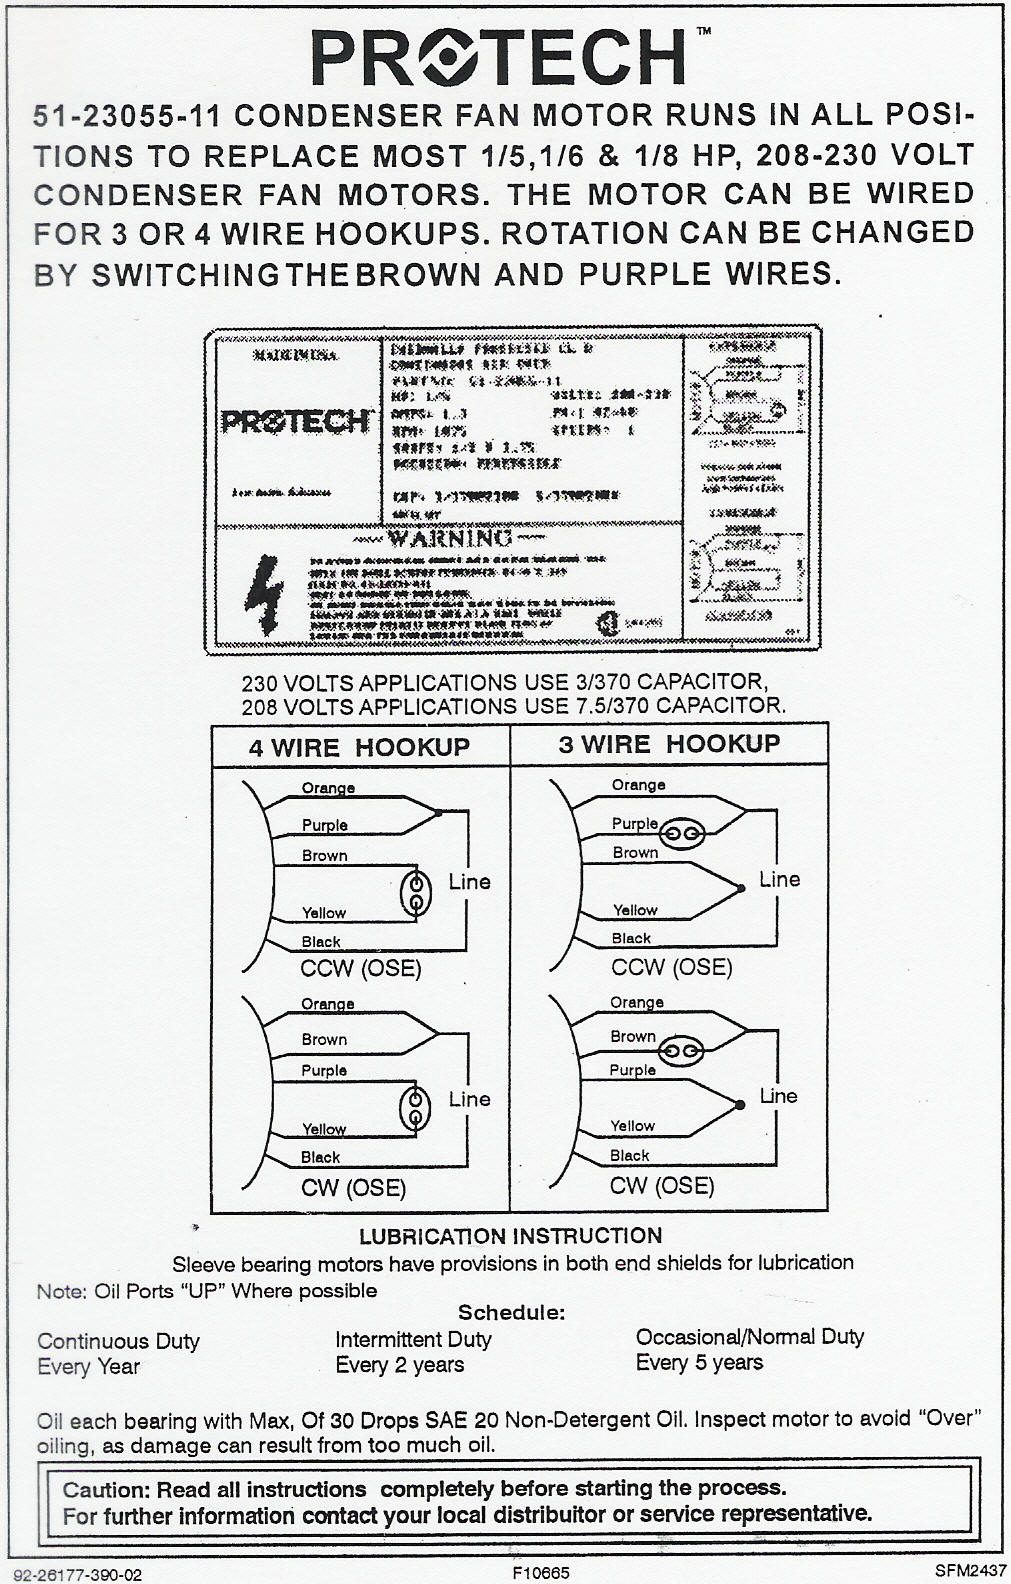 51 23055 11 wiring diagram rheem ruud condenser fan motor 51 23055 11 wiring diagram Basic Electrical Wiring Diagrams at mifinder.co